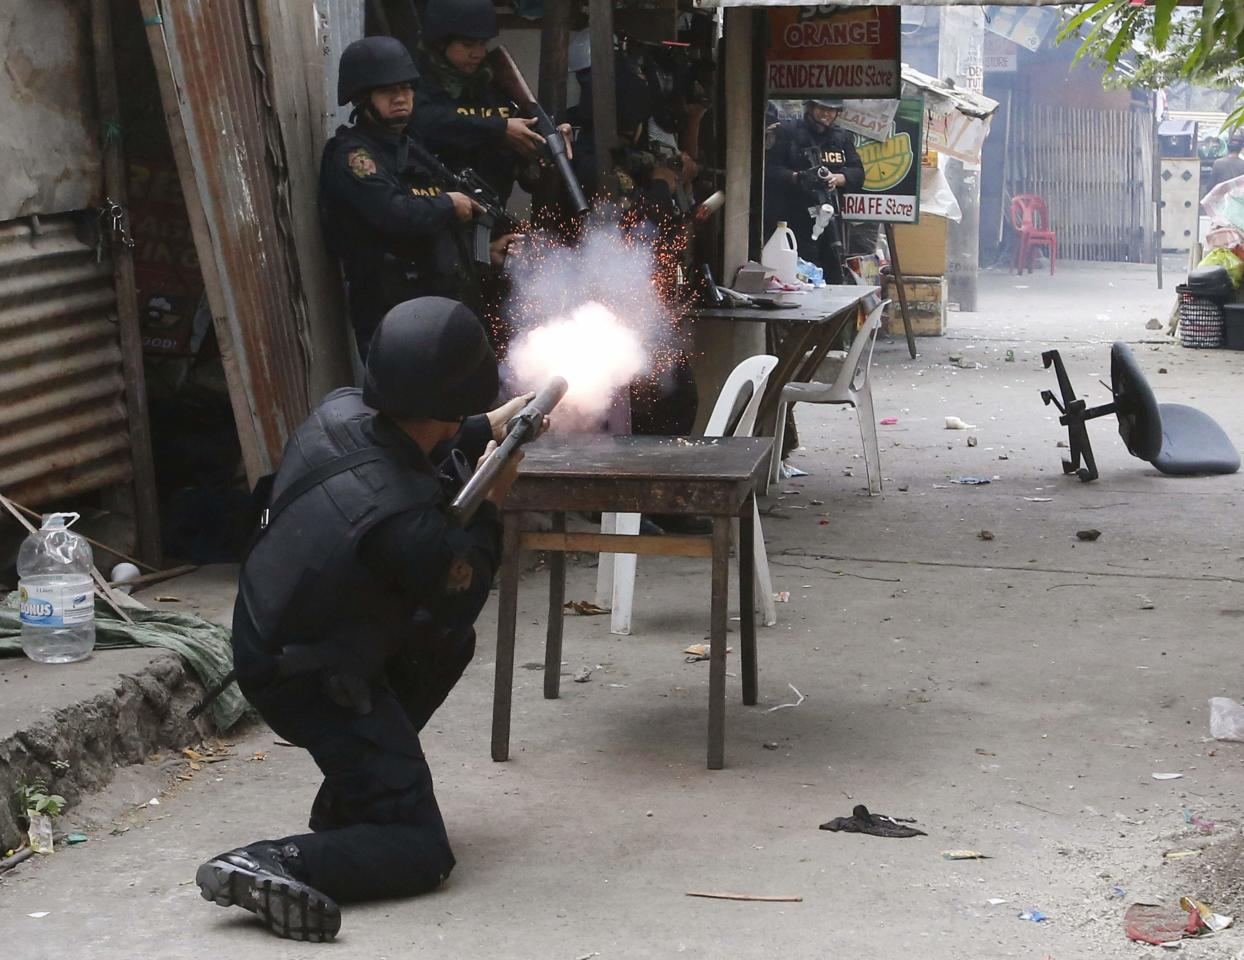 A policeman fires teargas during clashes with squatters at a squatter district in Quezon city